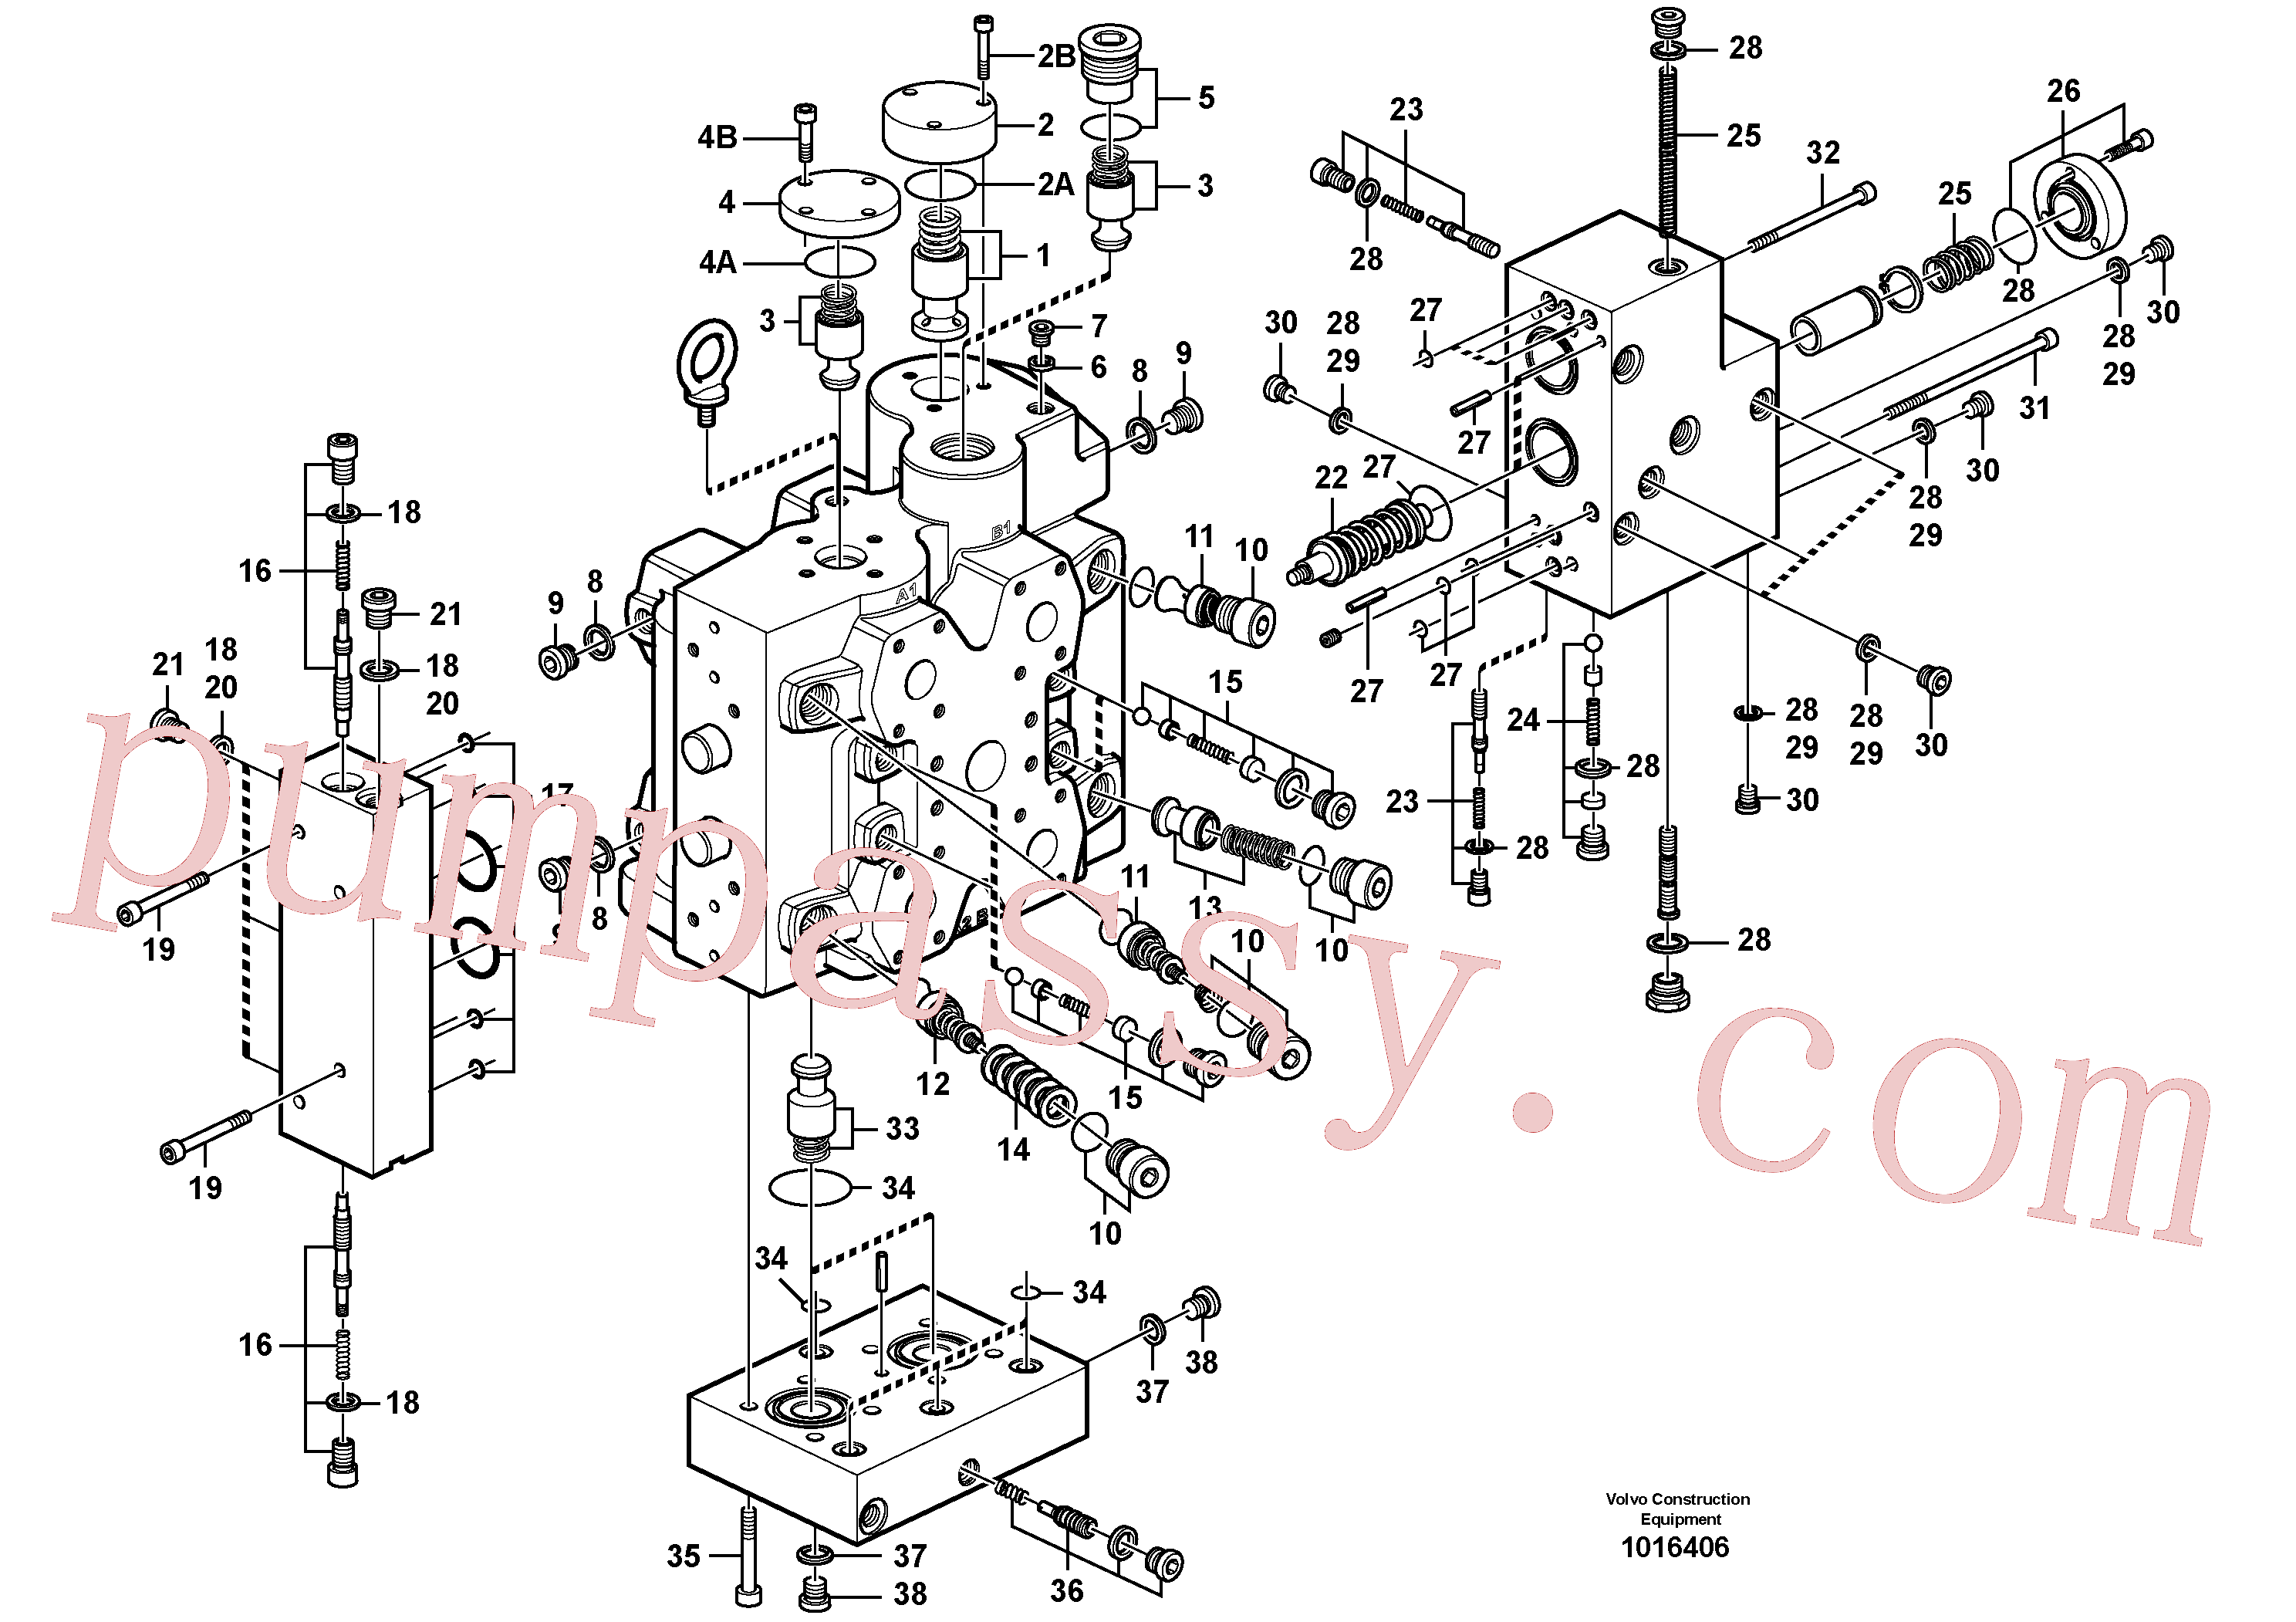 VOE11705092 for Volvo Control valve, Control valve.(1016406 assembly)